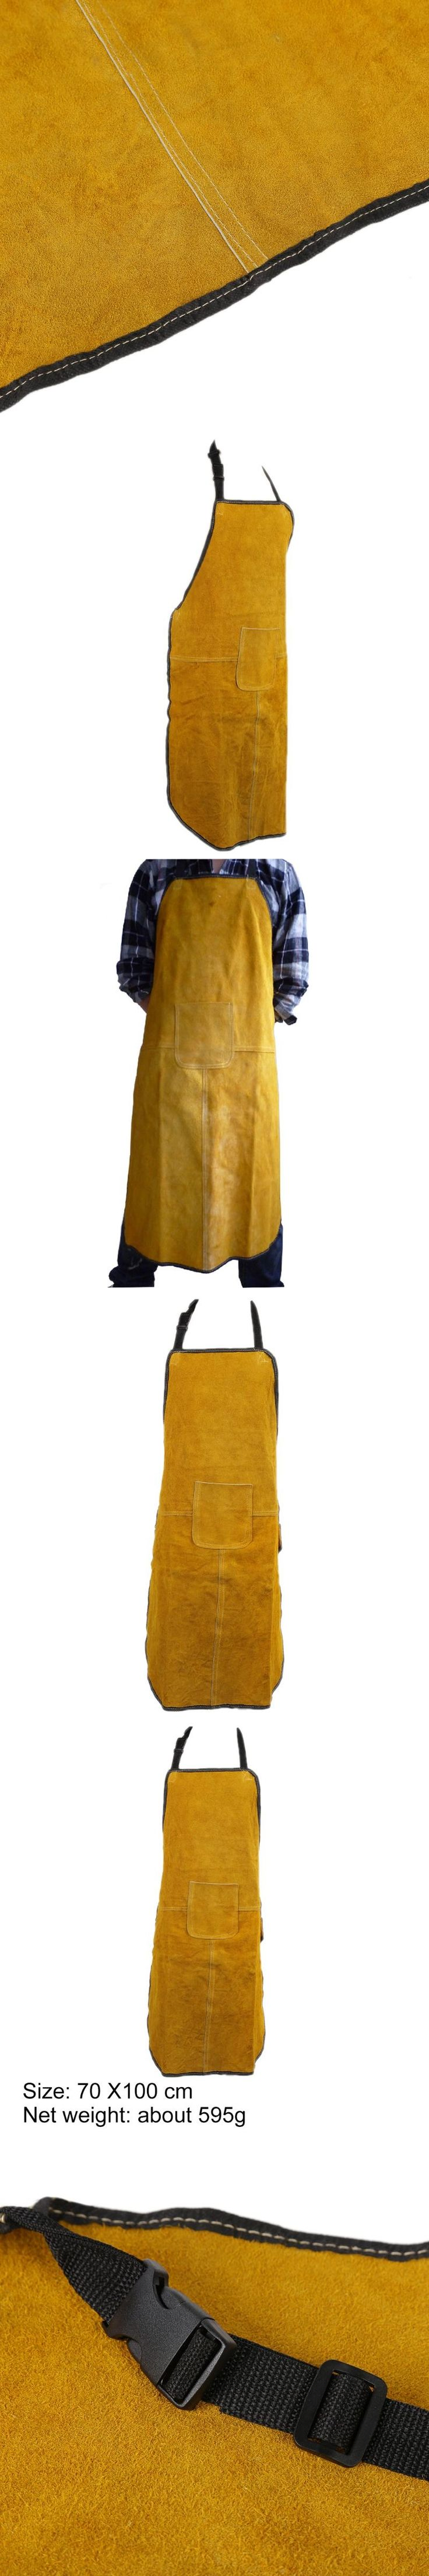 Special Protection Workwear Clothe Argon-arc Welding Leather Apron Workplace Safety Clothing Self Protect Aprons